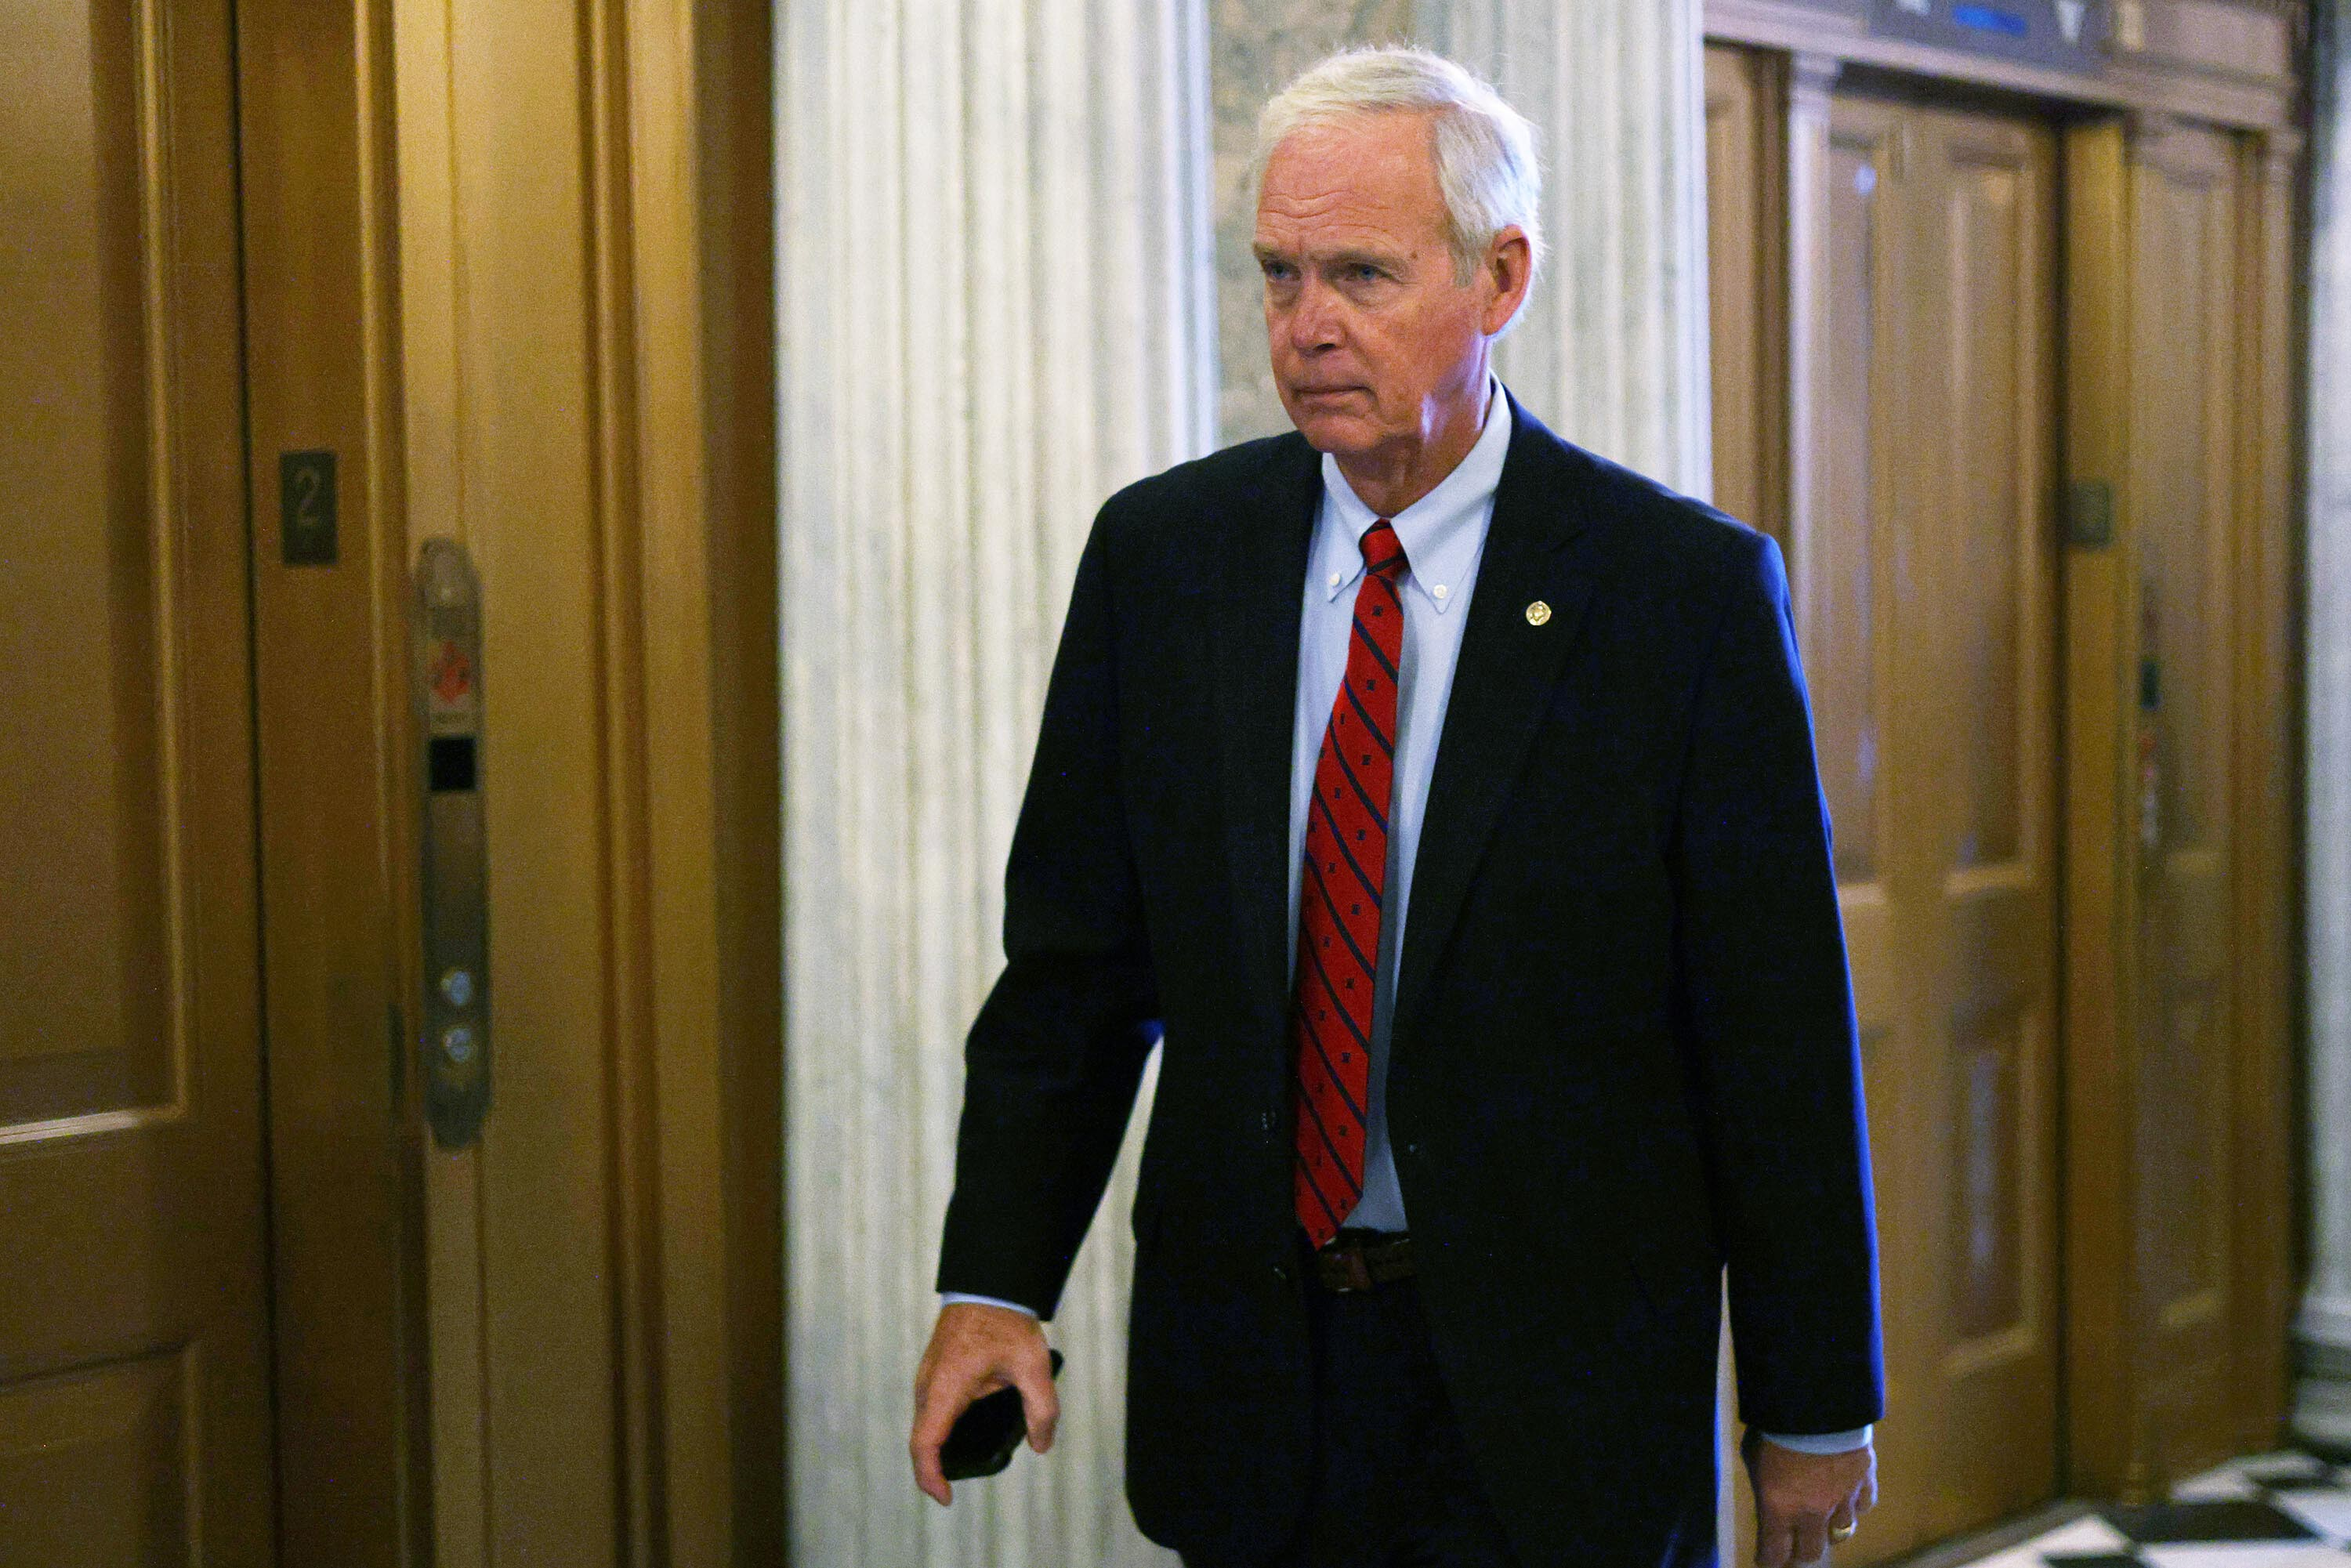 Sen. Ron Johnson's evolution from Tea Party insurgent to conspiracy theory promoter